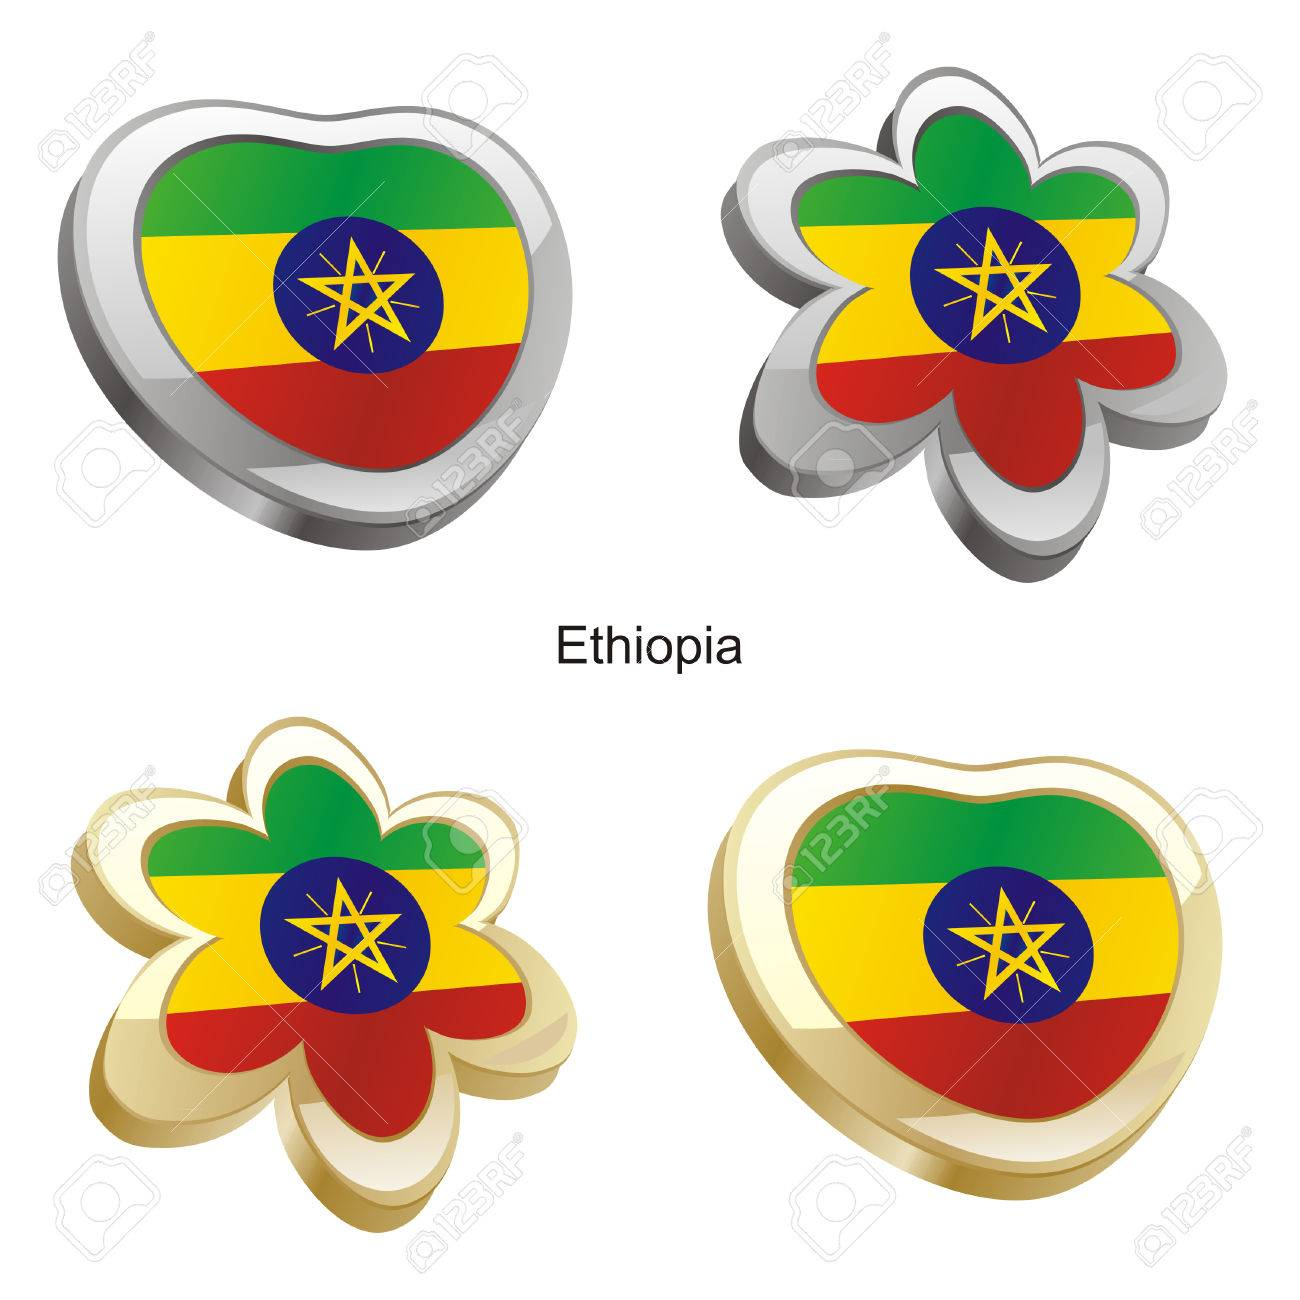 fully editable vector illustration of ethiopia flag in heart and flower shape Stock Vector - 6384699